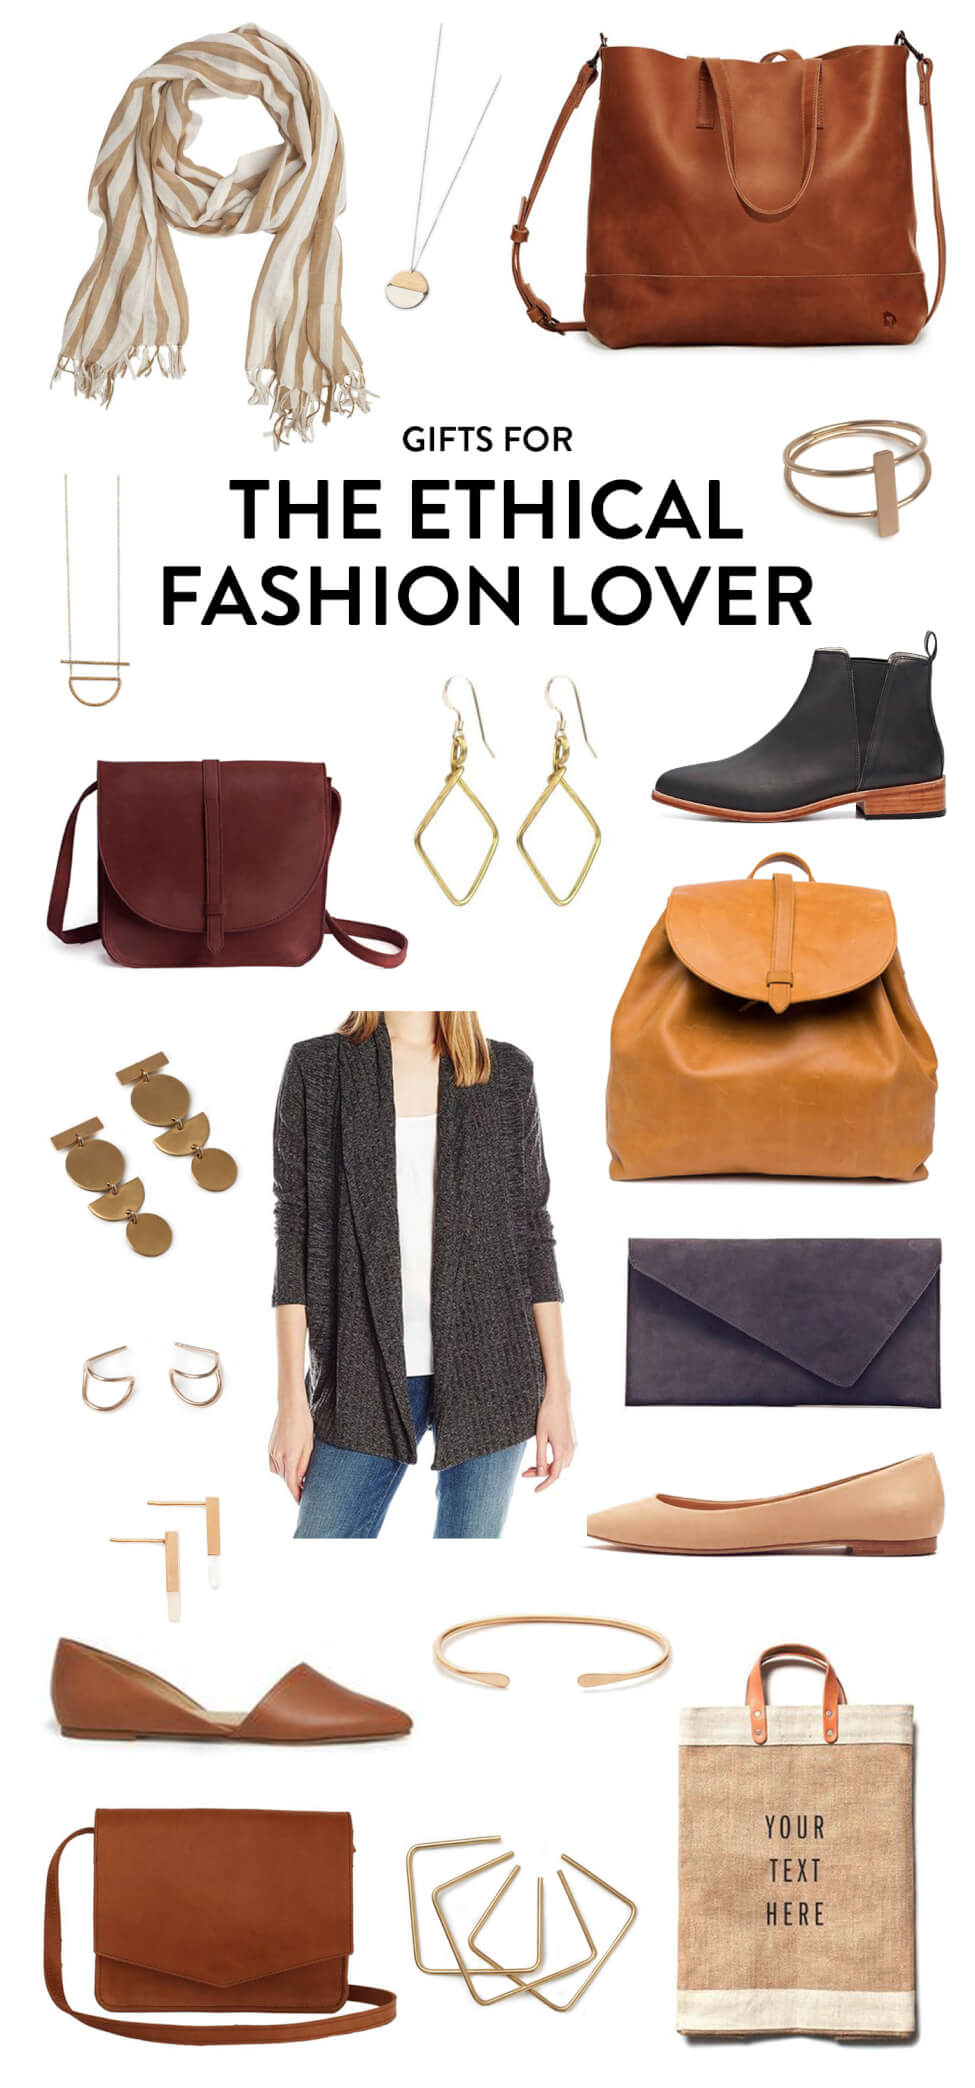 Great gifting ideas for the friend who loves sustainable fashion that gives back, including a beautiful scarf, tote bag, clutch, handbag, crossbody bag, flats, boots, cardigan, earrings, bracelets, necklaces, and a reusable shopping bag. | The Ethical Fashion Lover Gift Guide | Gimme Some Oven Holidays 2017